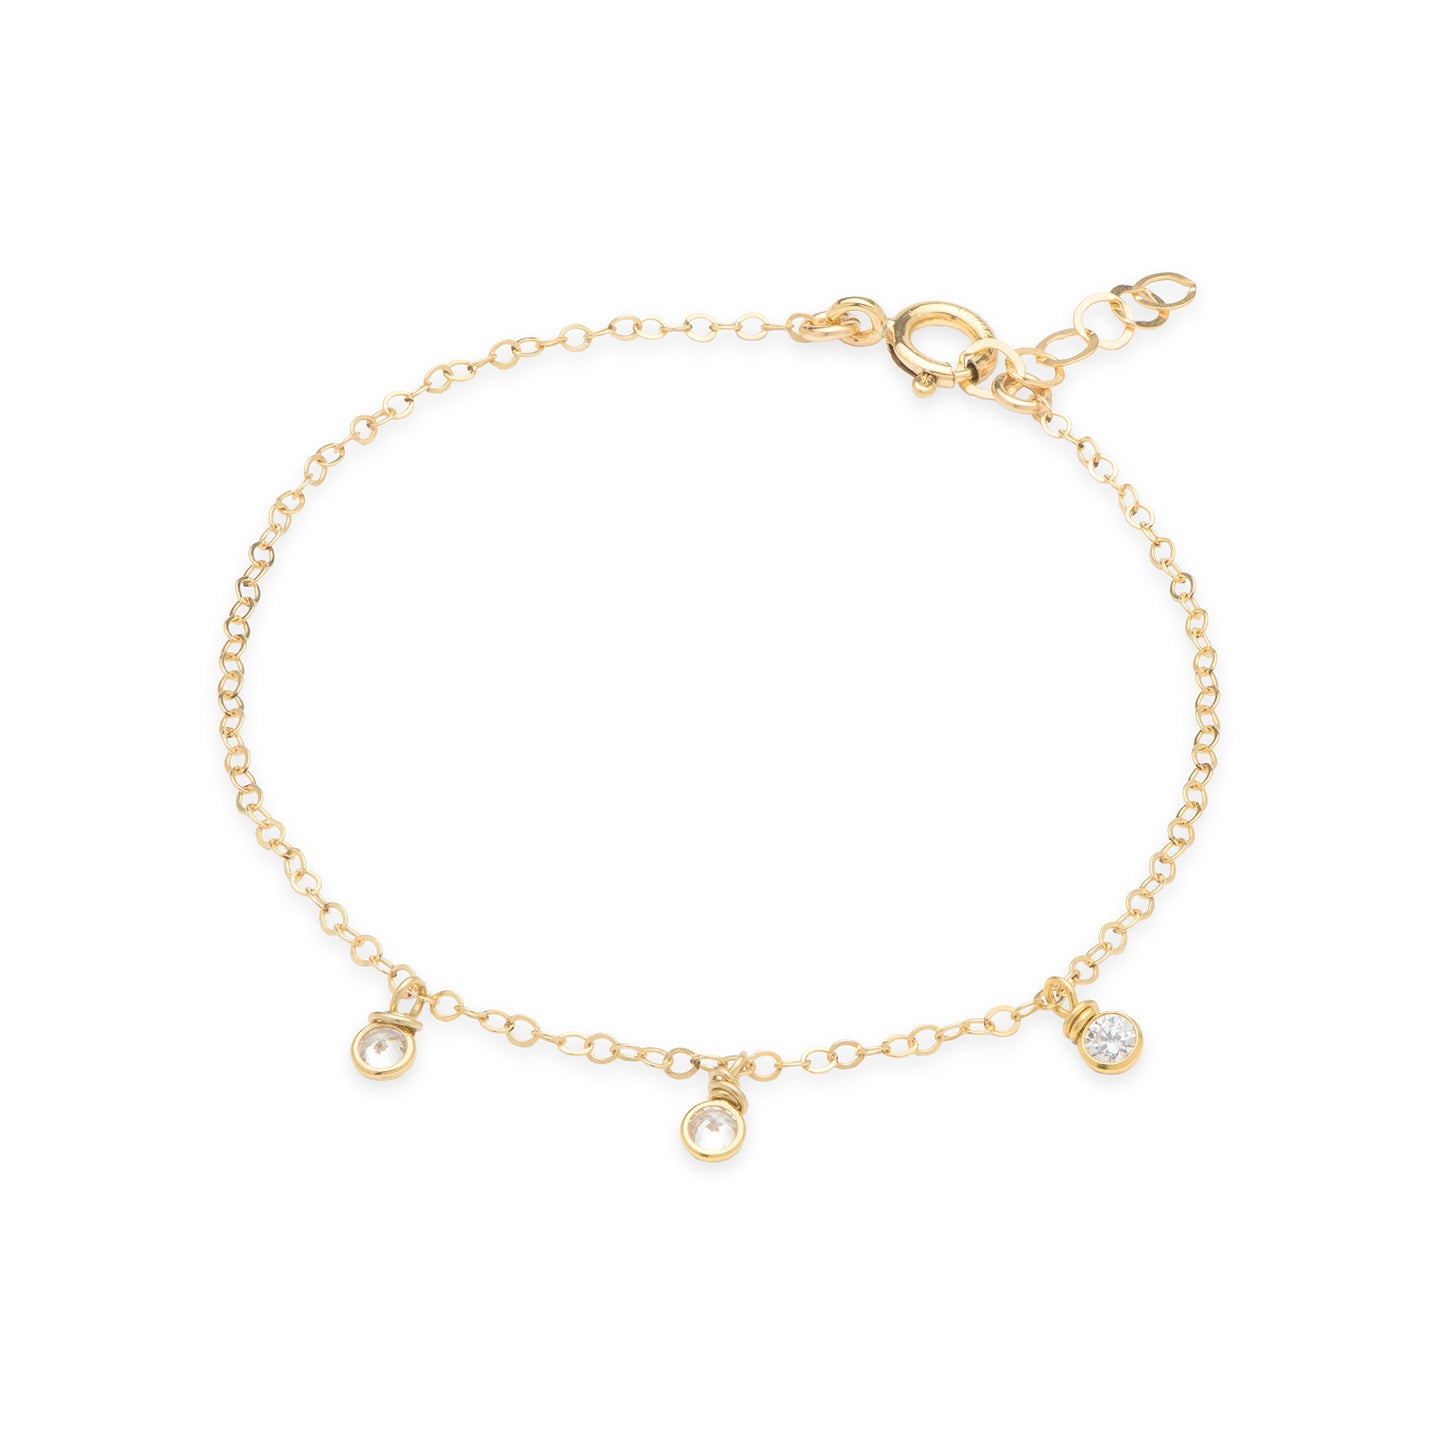 Dainty 14k gold filled charm tennis Bracelet with Cubic Zirconia